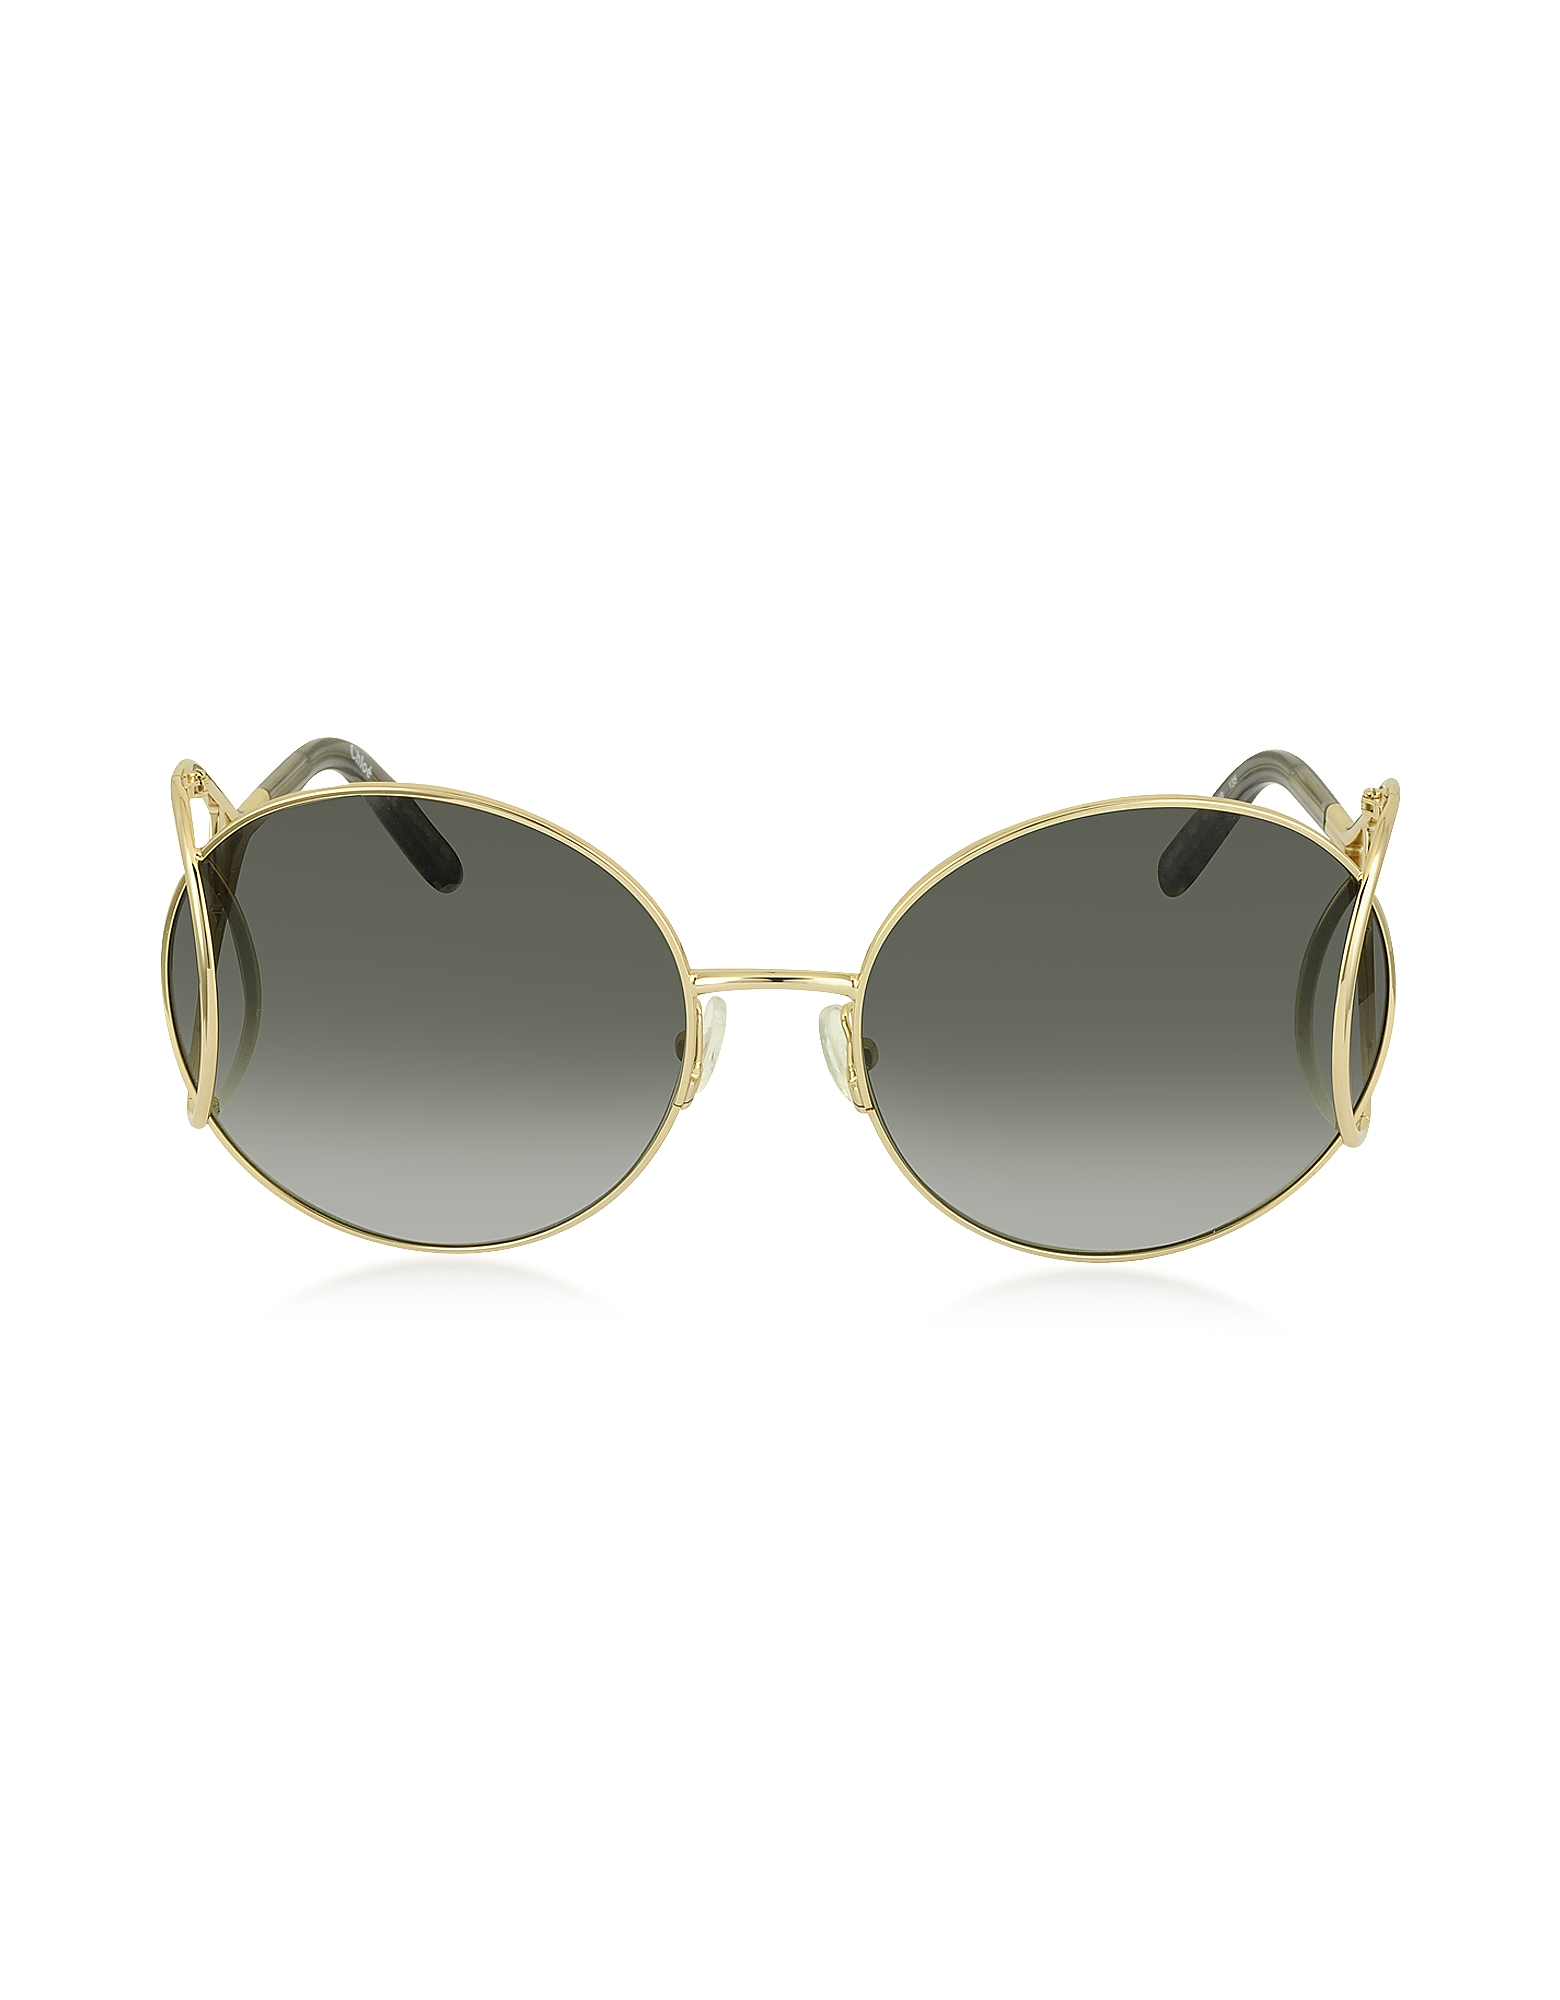 Chloe Sunglasses, JACKSON CE 124S Metal Round Women's Sunglasses